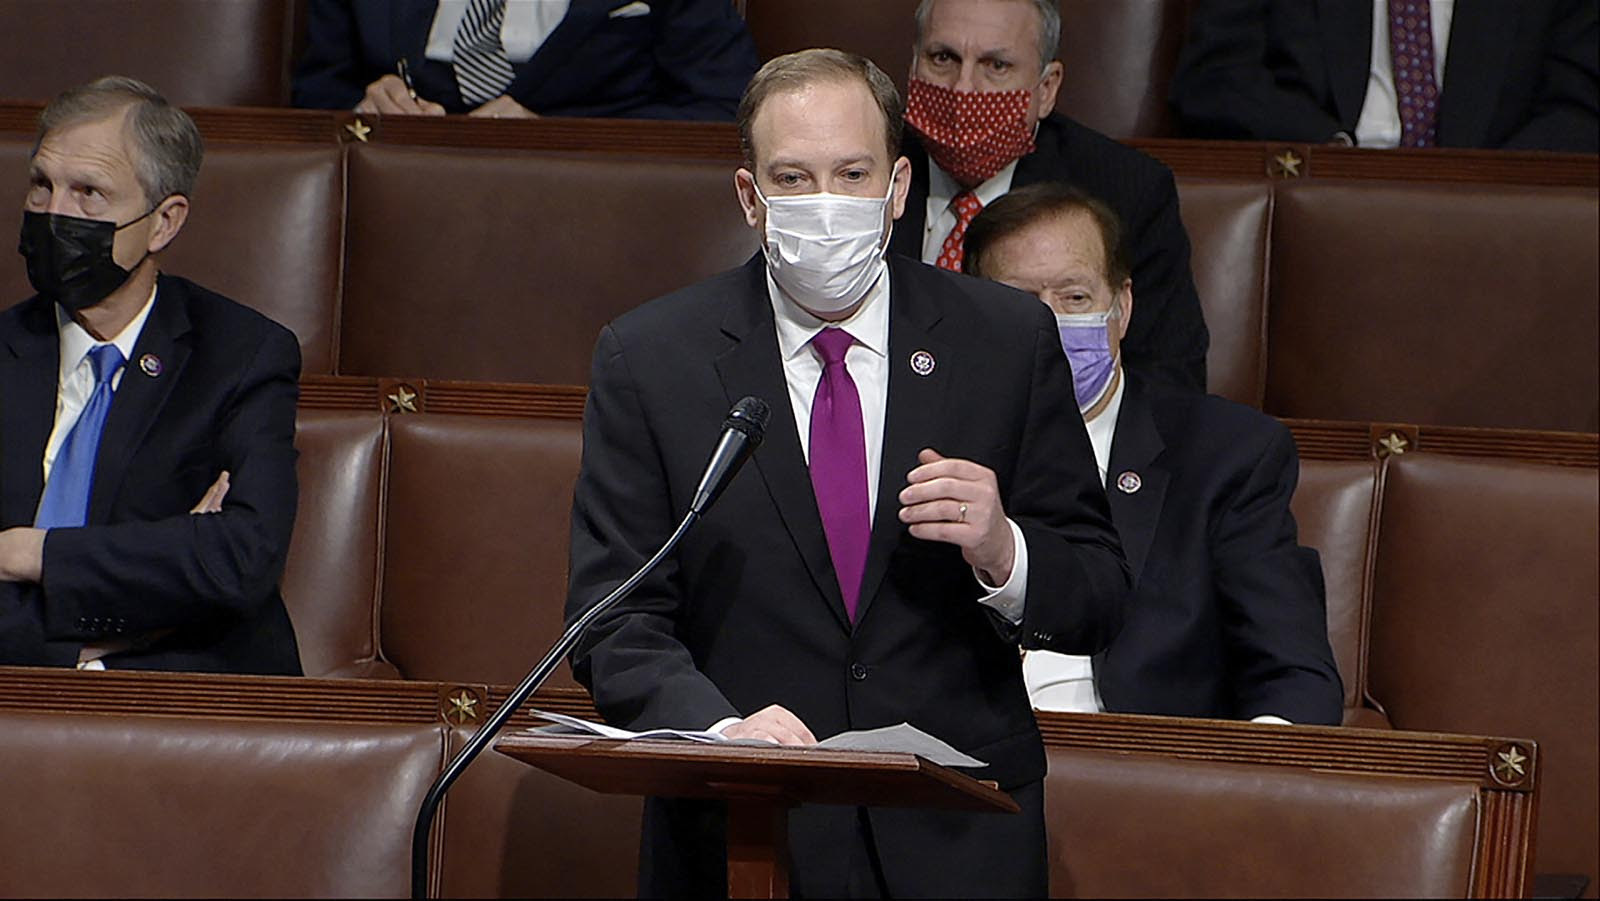 U.S. Representative Lee Zeldin speaking on the floor of the House of Representatives on January 6. Mr. Zeldin delivered another fiery speech on Wednesday defending the president from what he called a